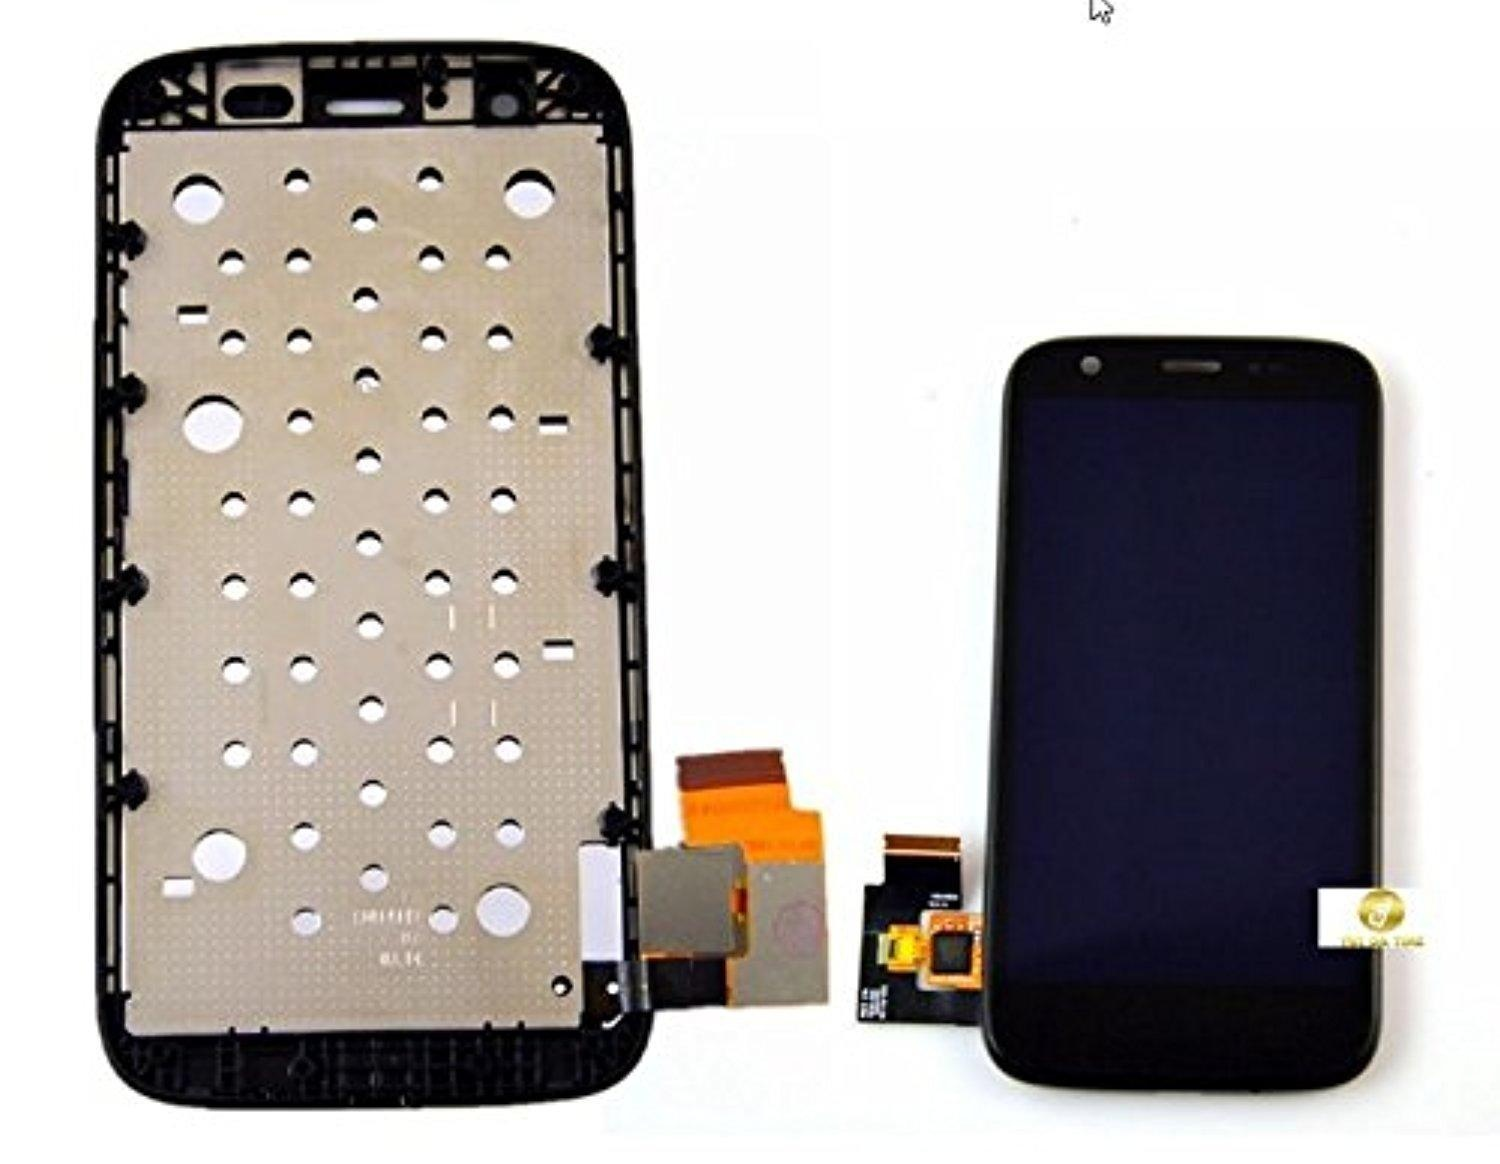 OEM Motorola Moto G 1st generation LCD Display Digitizer Front +Frame Assembly Black